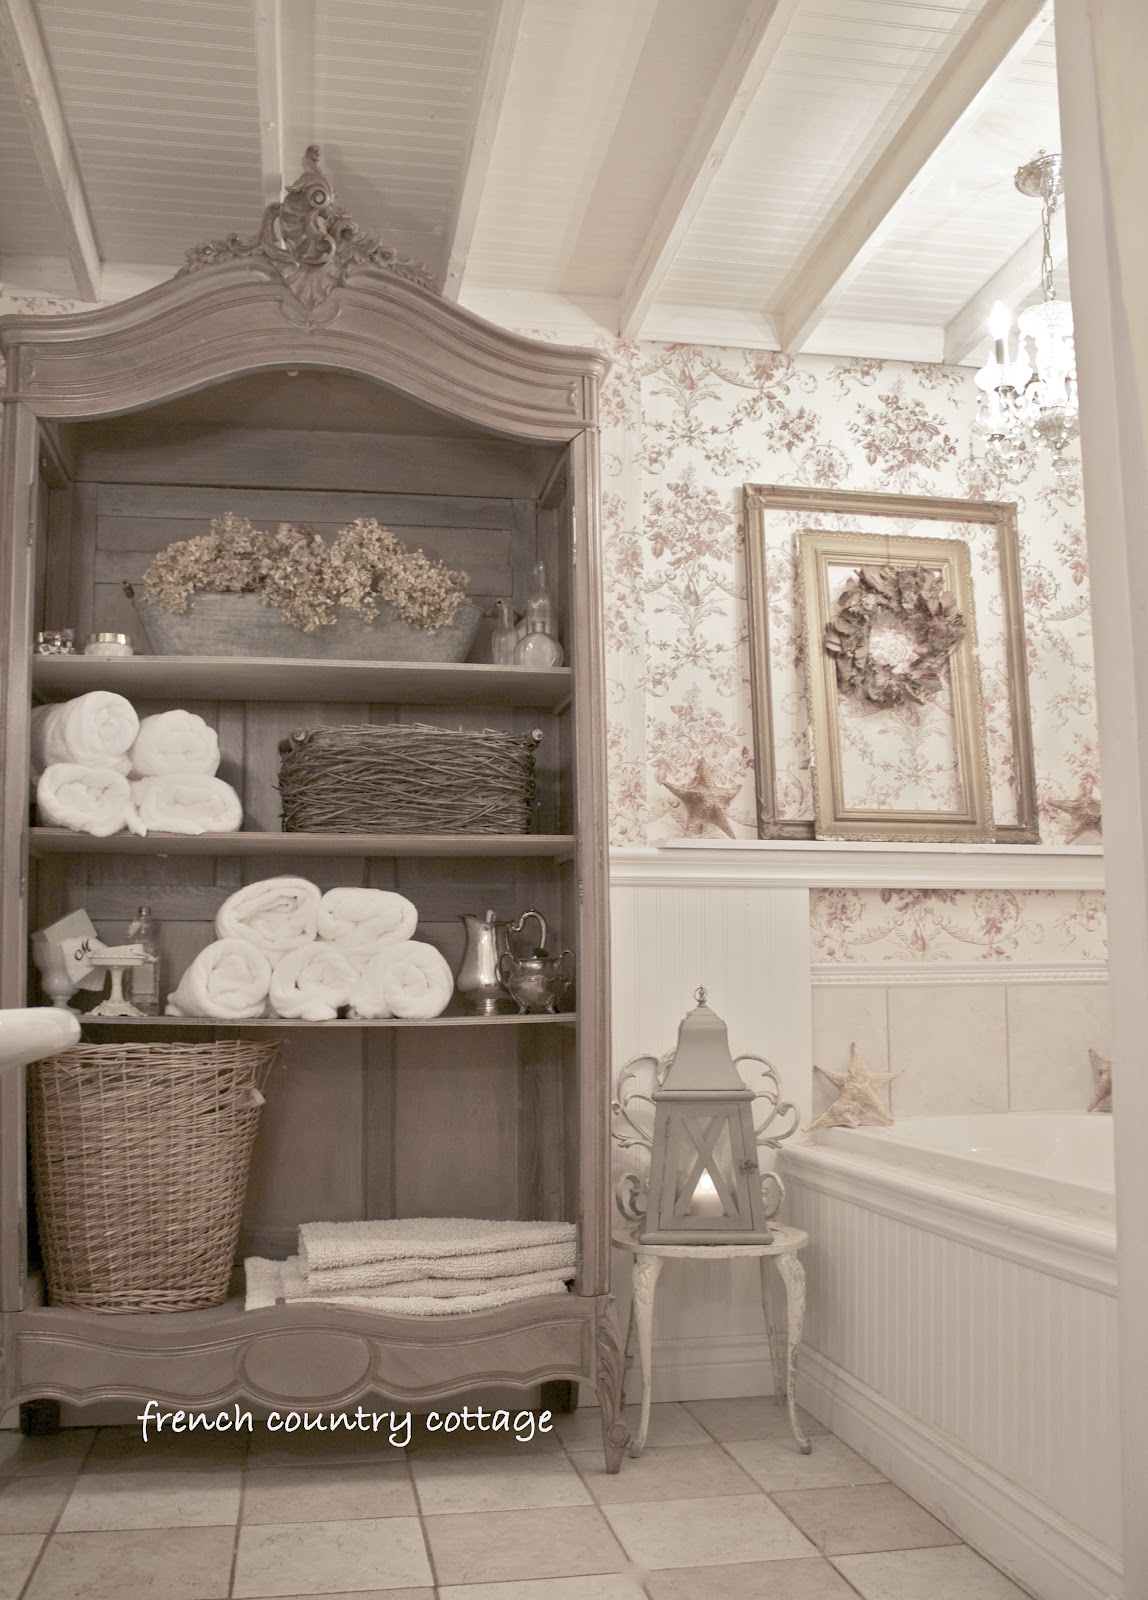 cottage bathroom inspirations french country cottage 30 great ideas and pictures for bathroom tile gallery